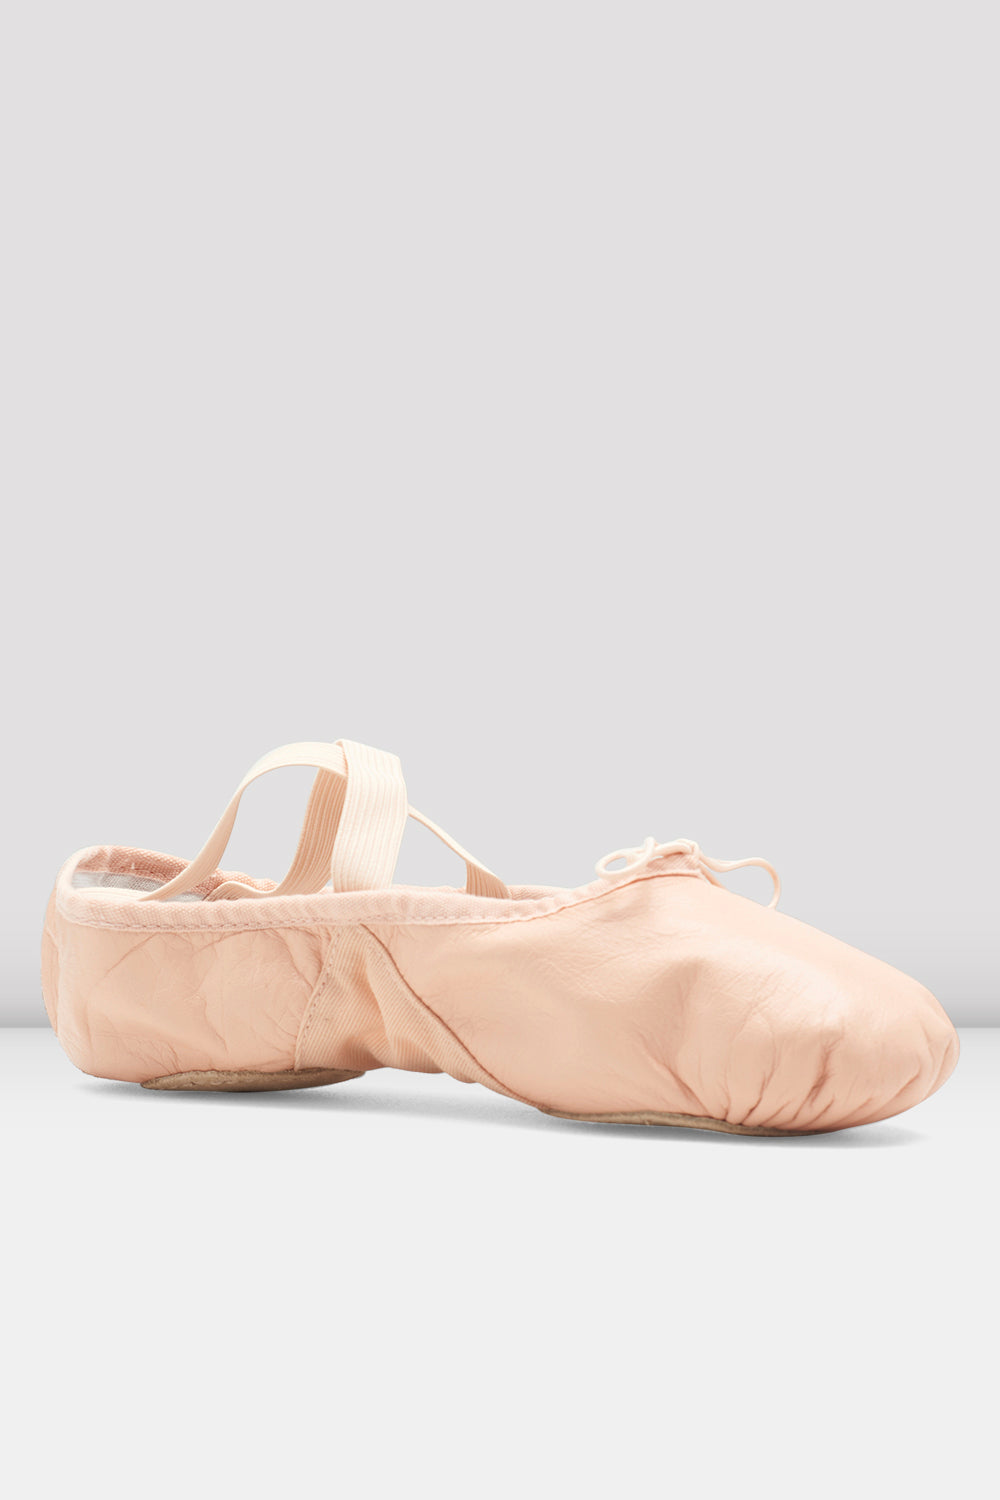 Girls Prolite 2 Hybrid Ballet Shoes - BLOCH US